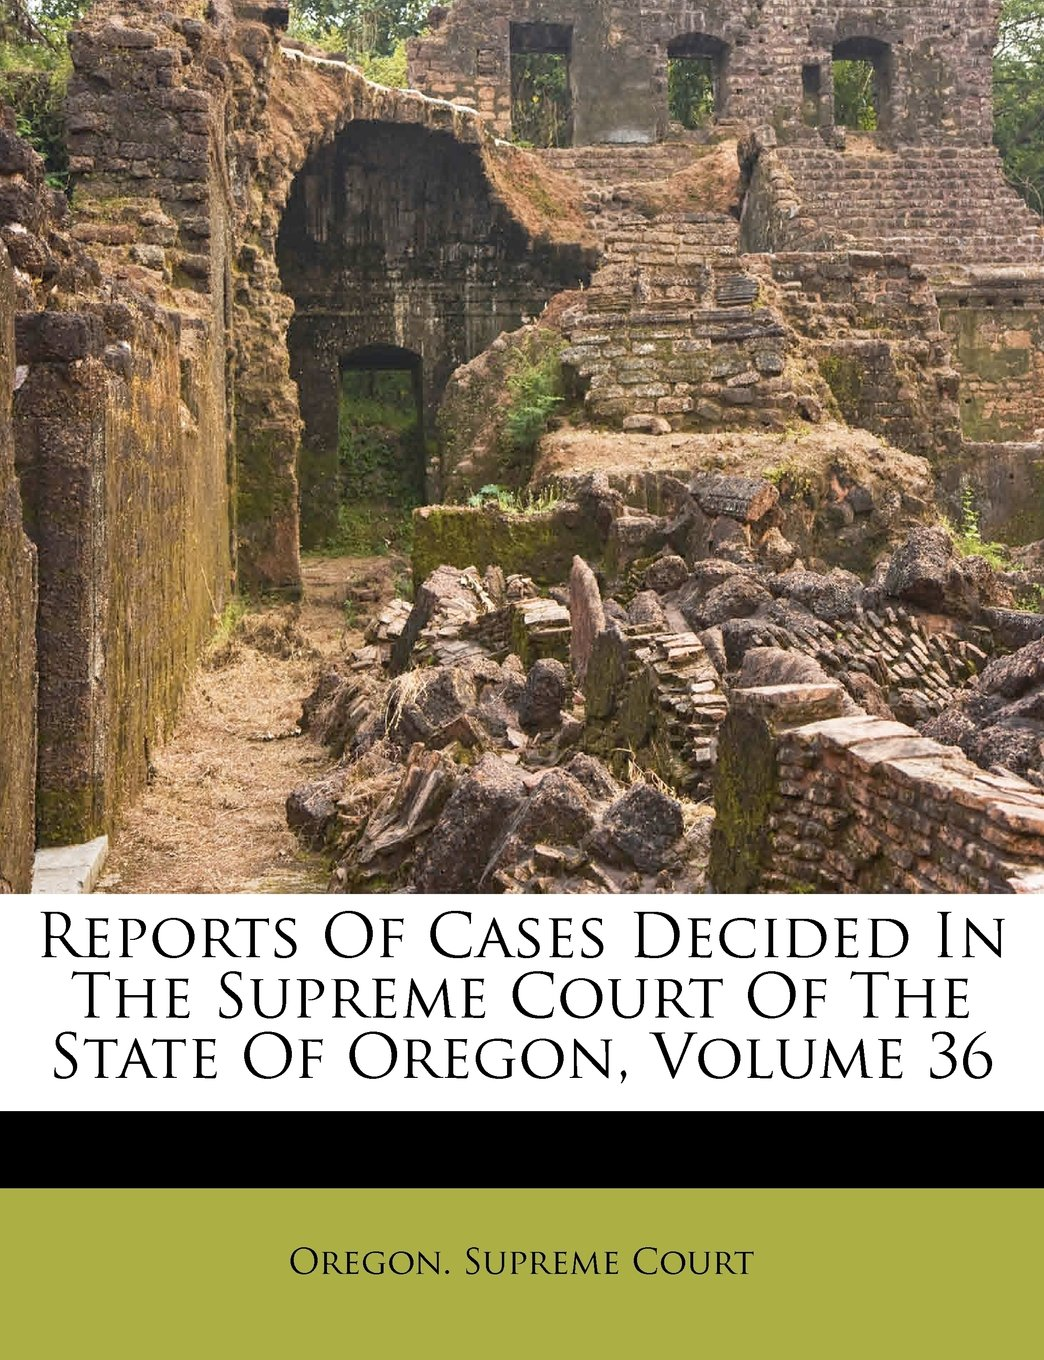 Reports Of Cases Decided In The Supreme Court Of The State Of Oregon, Volume 36 PDF